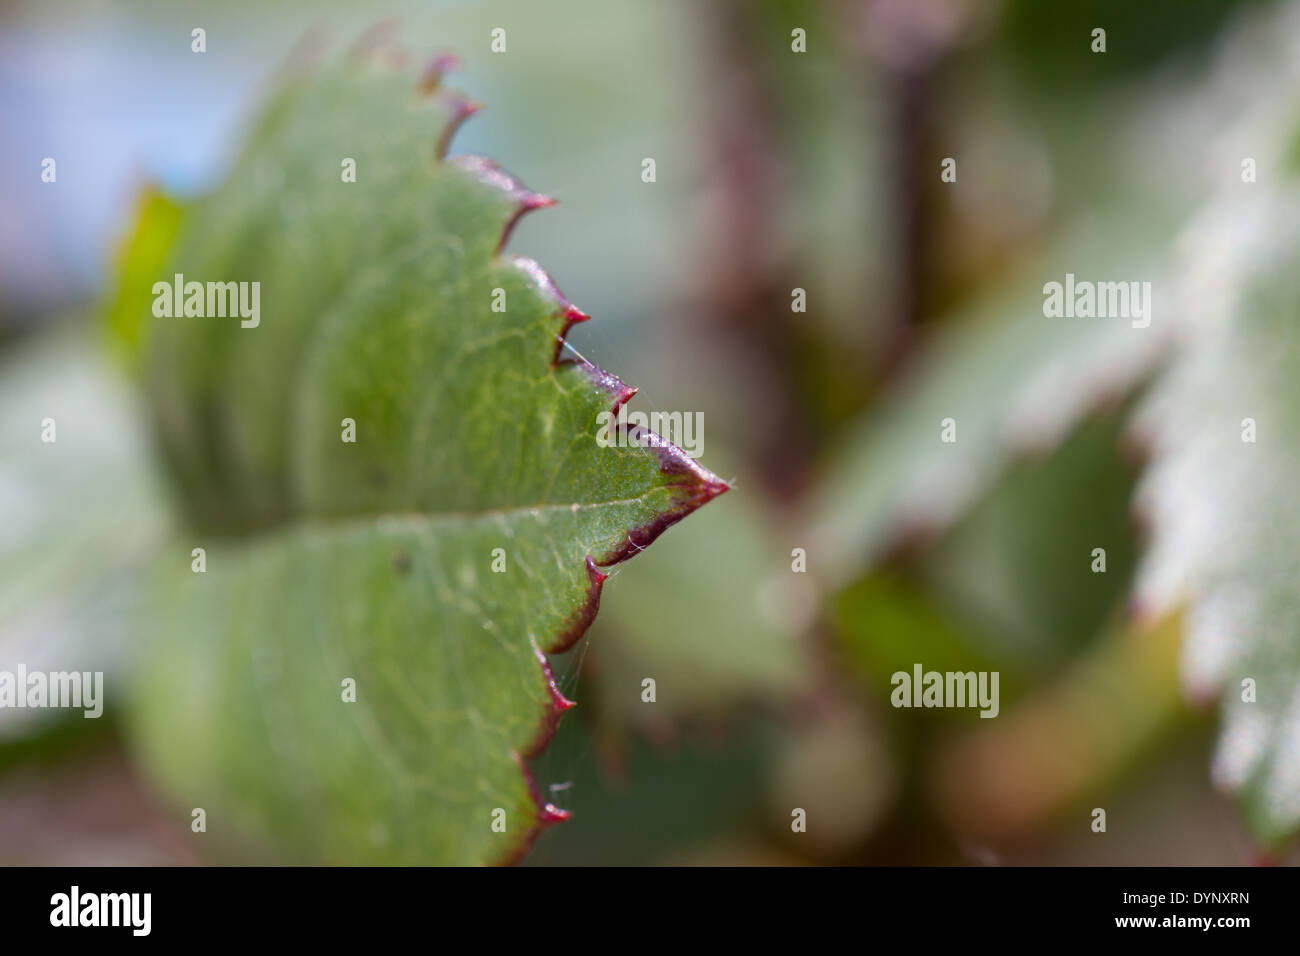 Side view of serrated green and red rose leaf - Stock Image